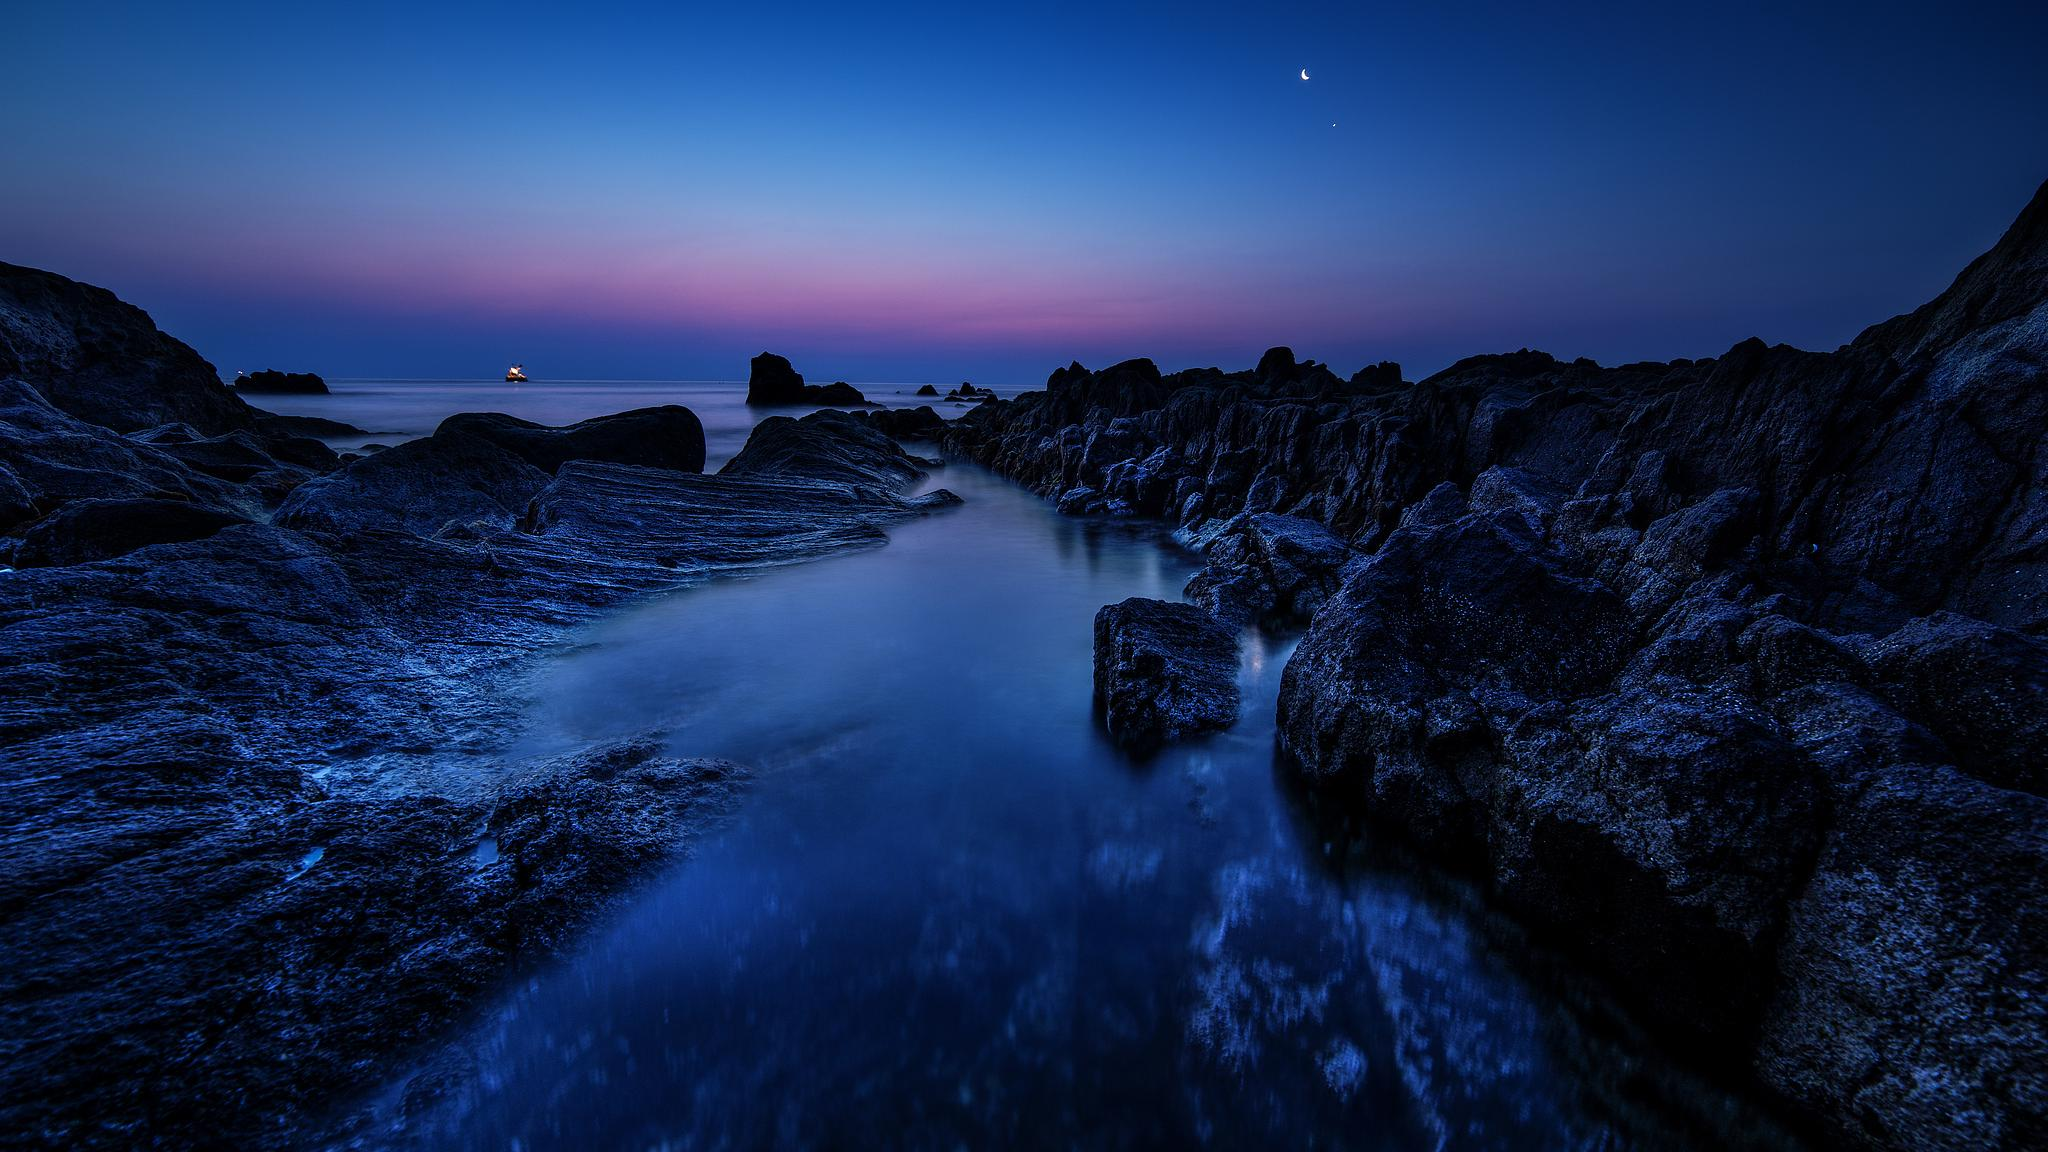 Blue Hour by Motohisa Shimazu